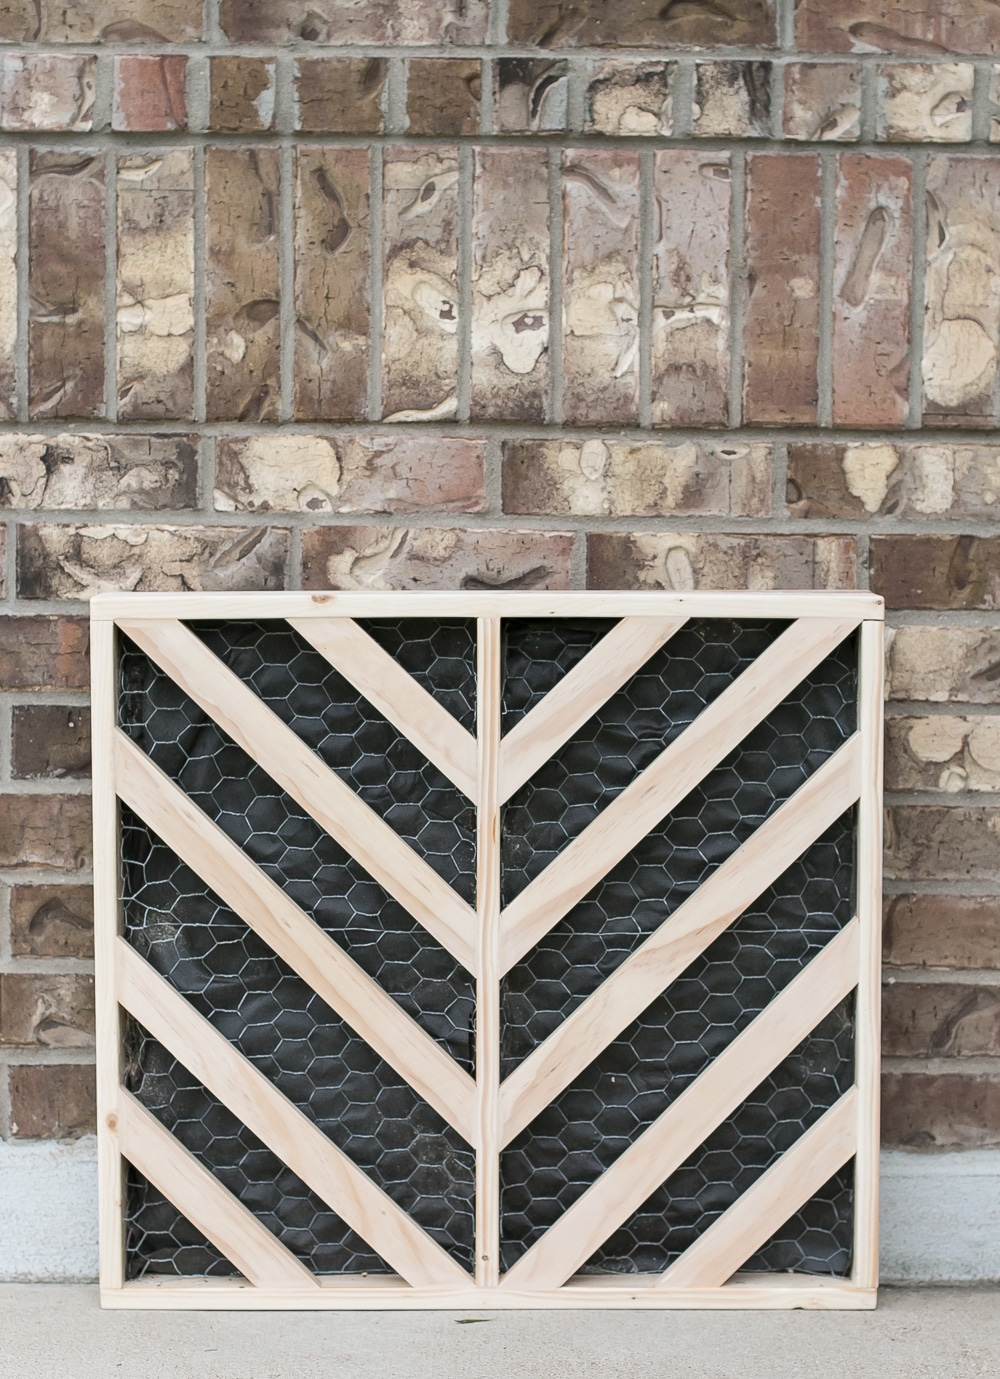 How to build a DIY chevron wall planter